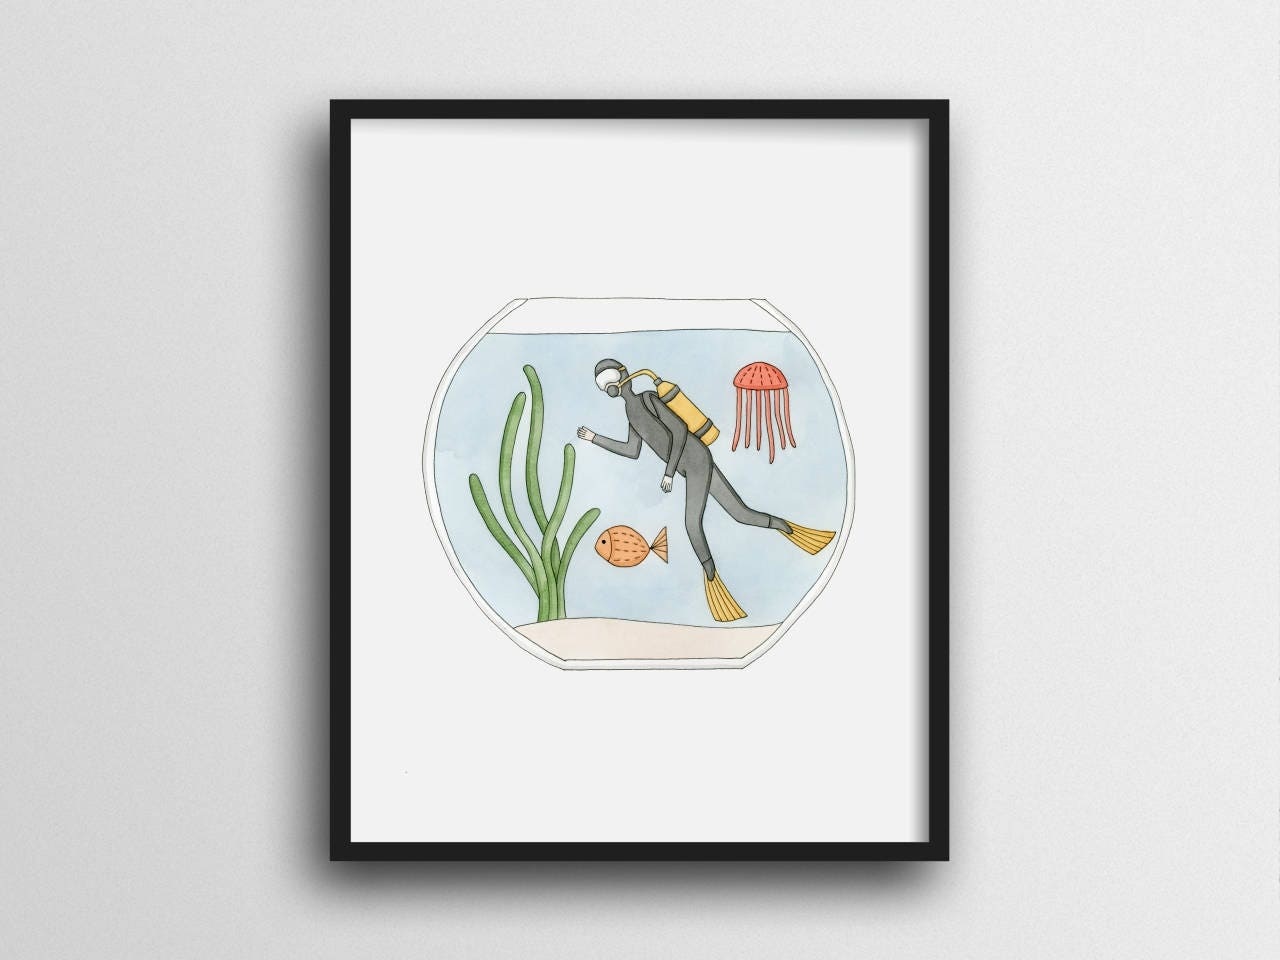 Scuba diving in a fish bowl wall art print home decor 11x14 for Diving and fishing mural